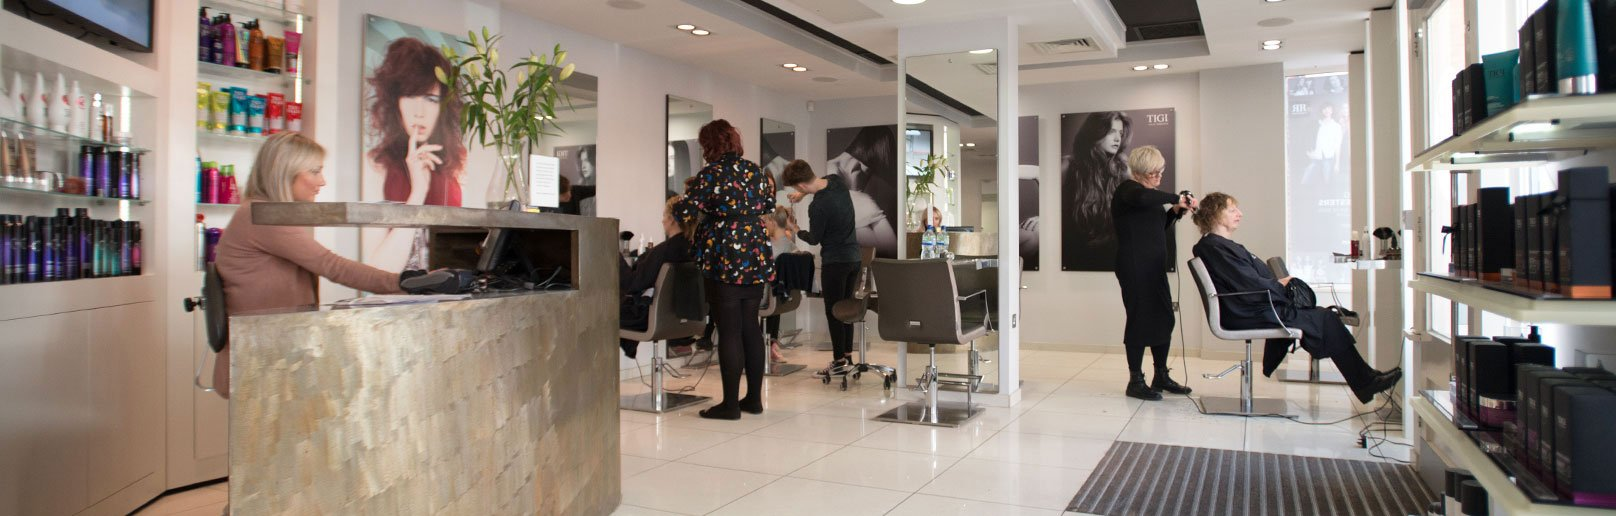 Forresters pangbourne hair salon interior picture